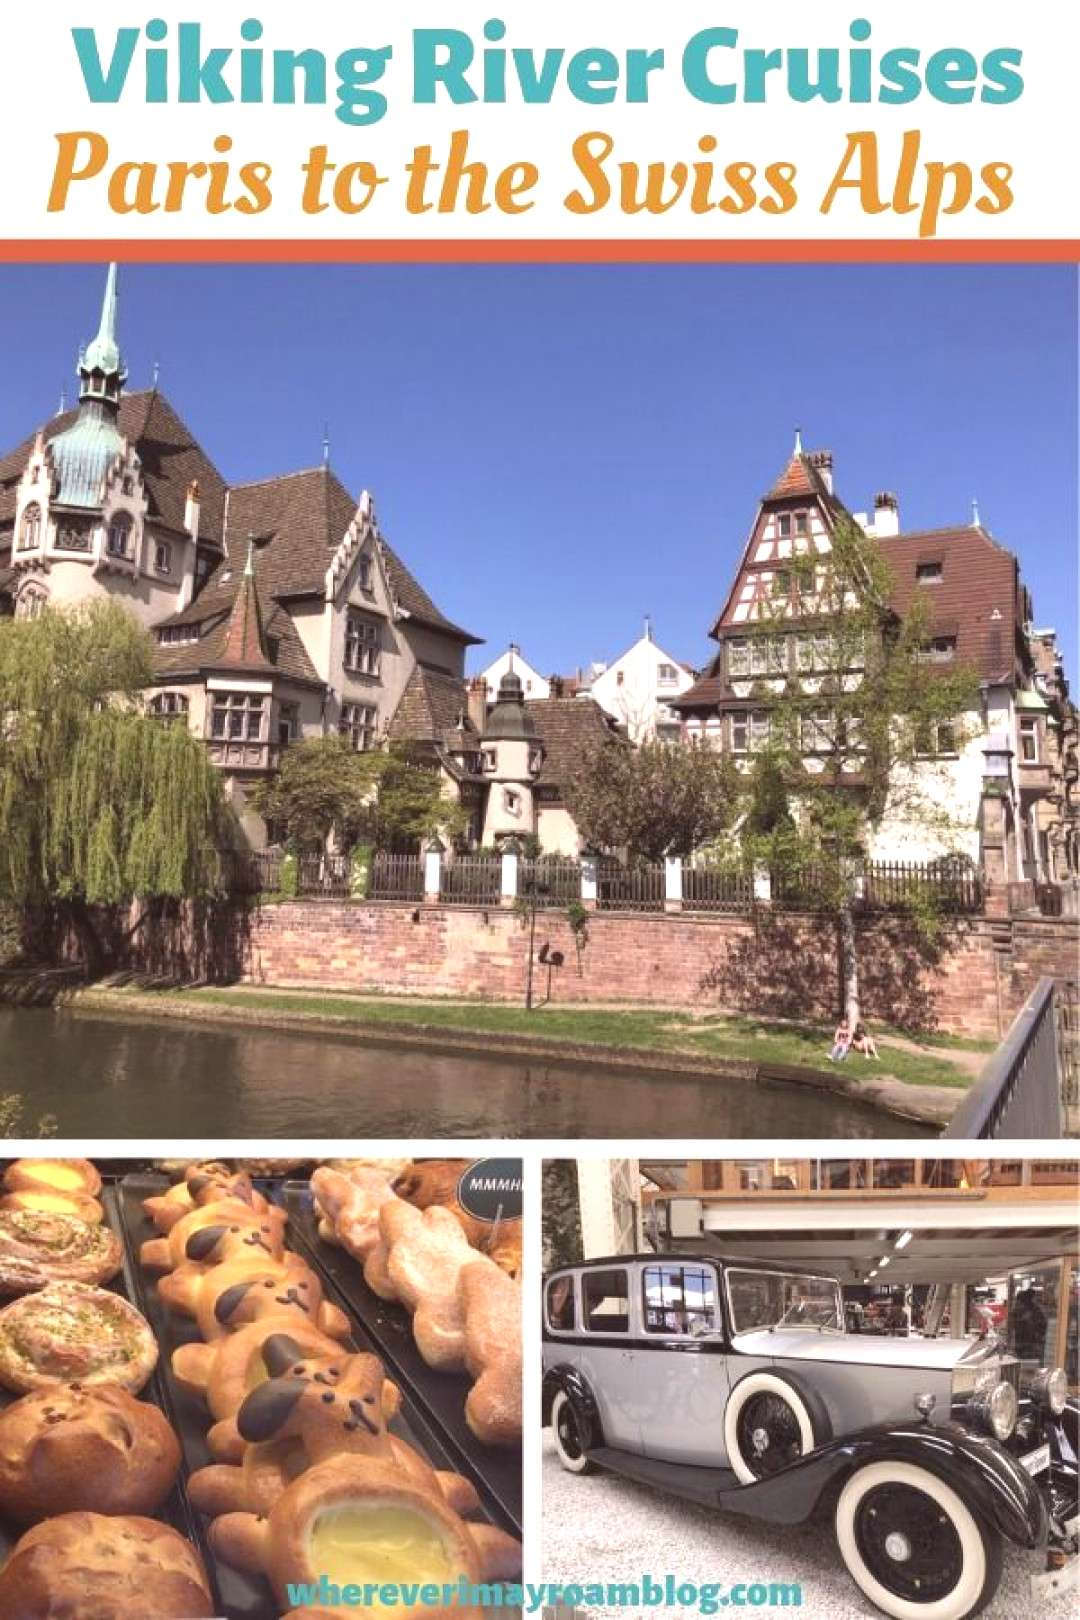 Viking River Cruises Paris to the Swiss Alps in 12 Days - Wherever I May Roam Check out the awesom